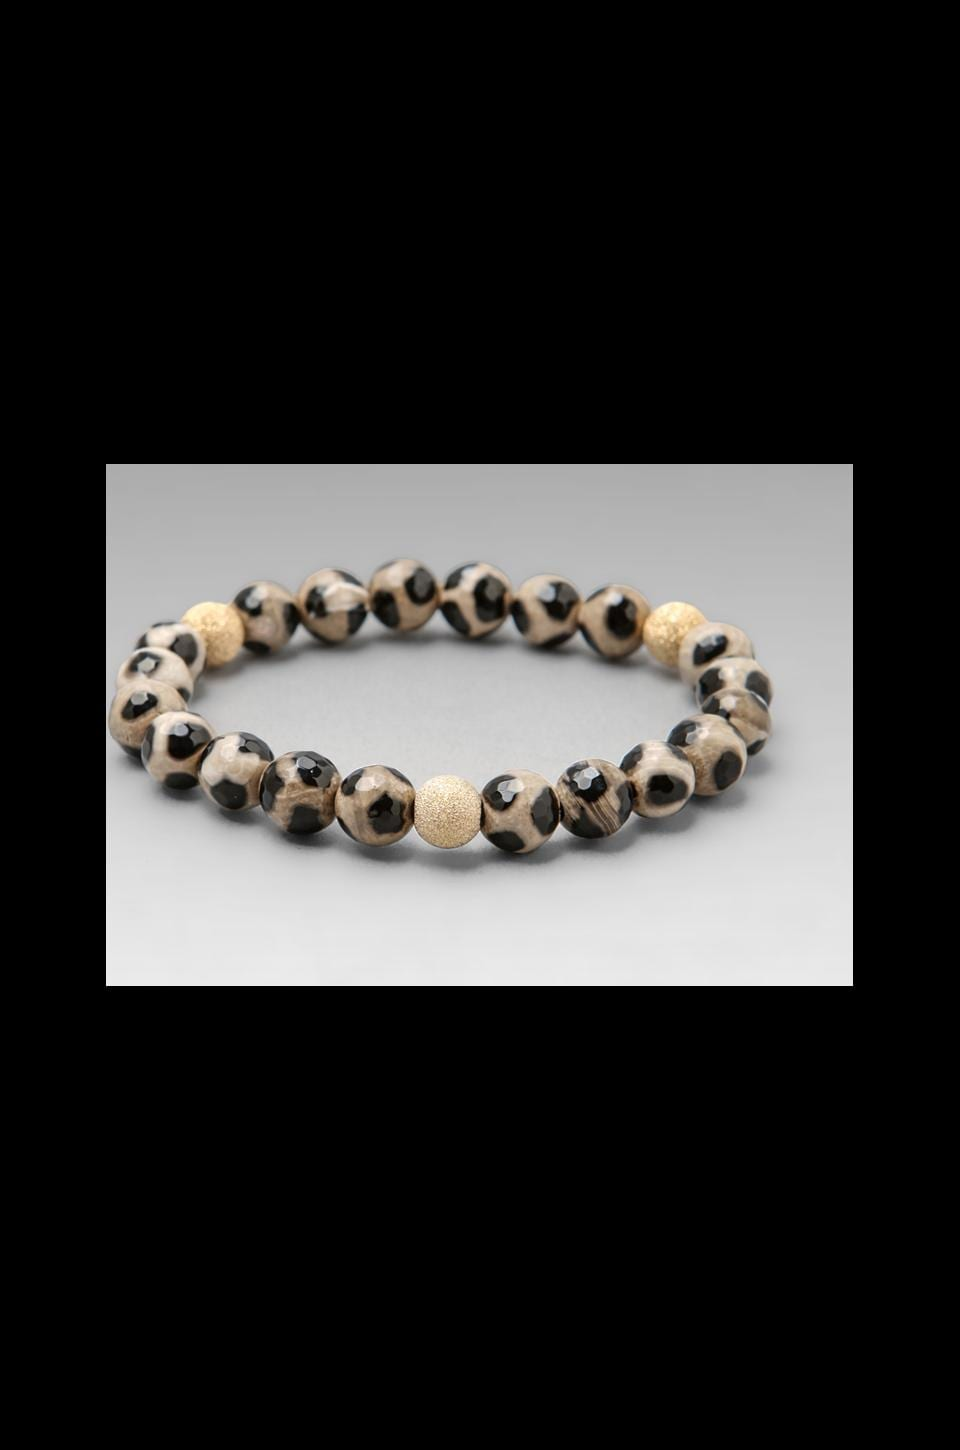 JNB Leopard Bracelet in Black/White